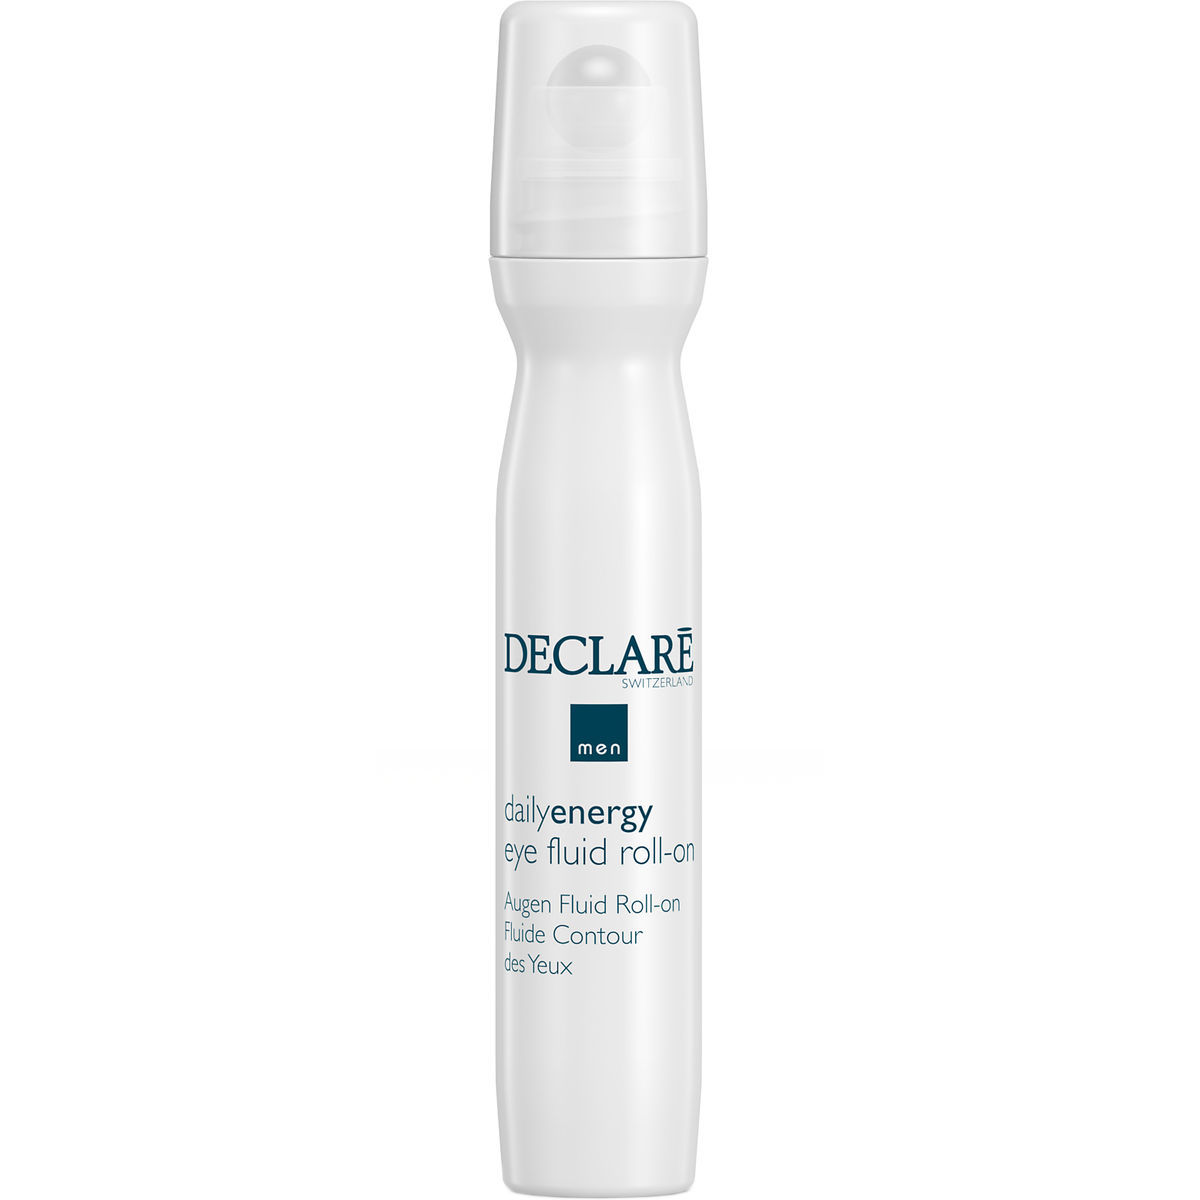 Declaré dailyenergy eye fluid roll-on, Augenbalsam, 15 ml